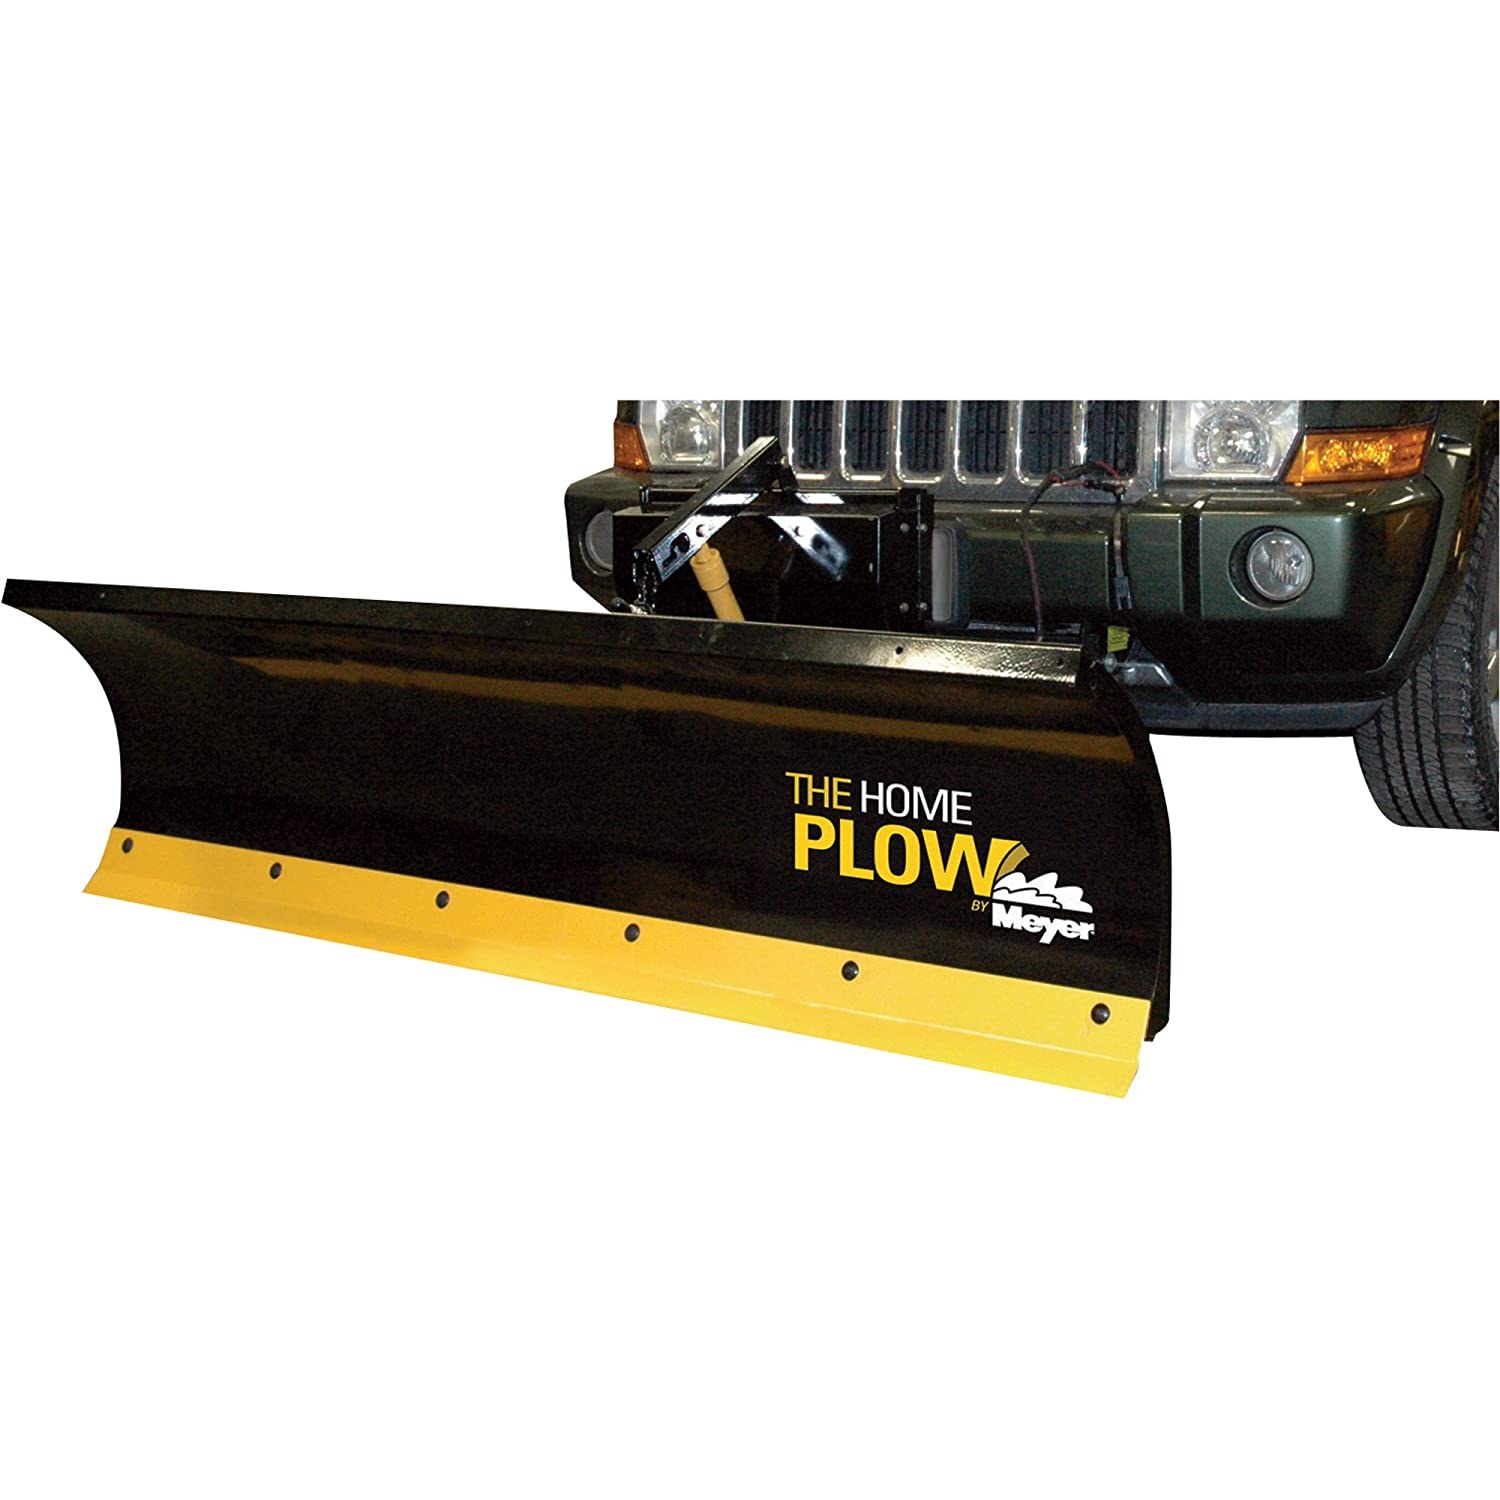 71V4um0gTKL._SL1500_ amazon com meyer products 26000 home plow automotive  at creativeand.co